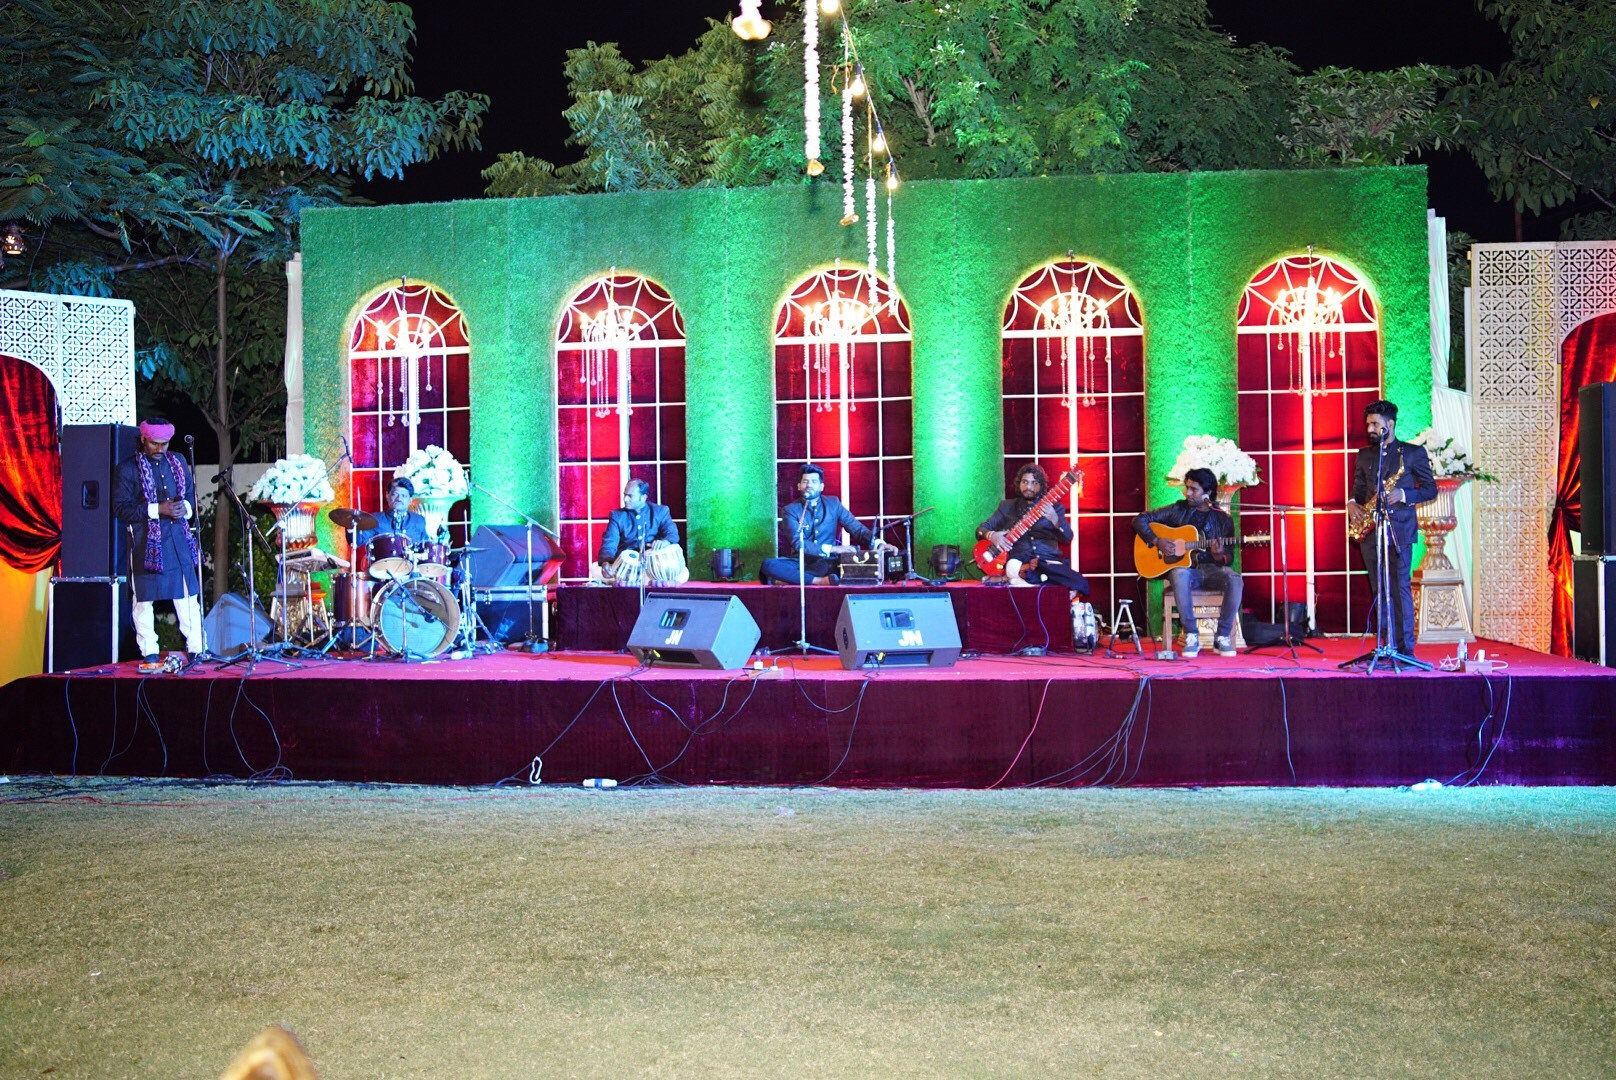 Swaraag performing folk music for the audience.